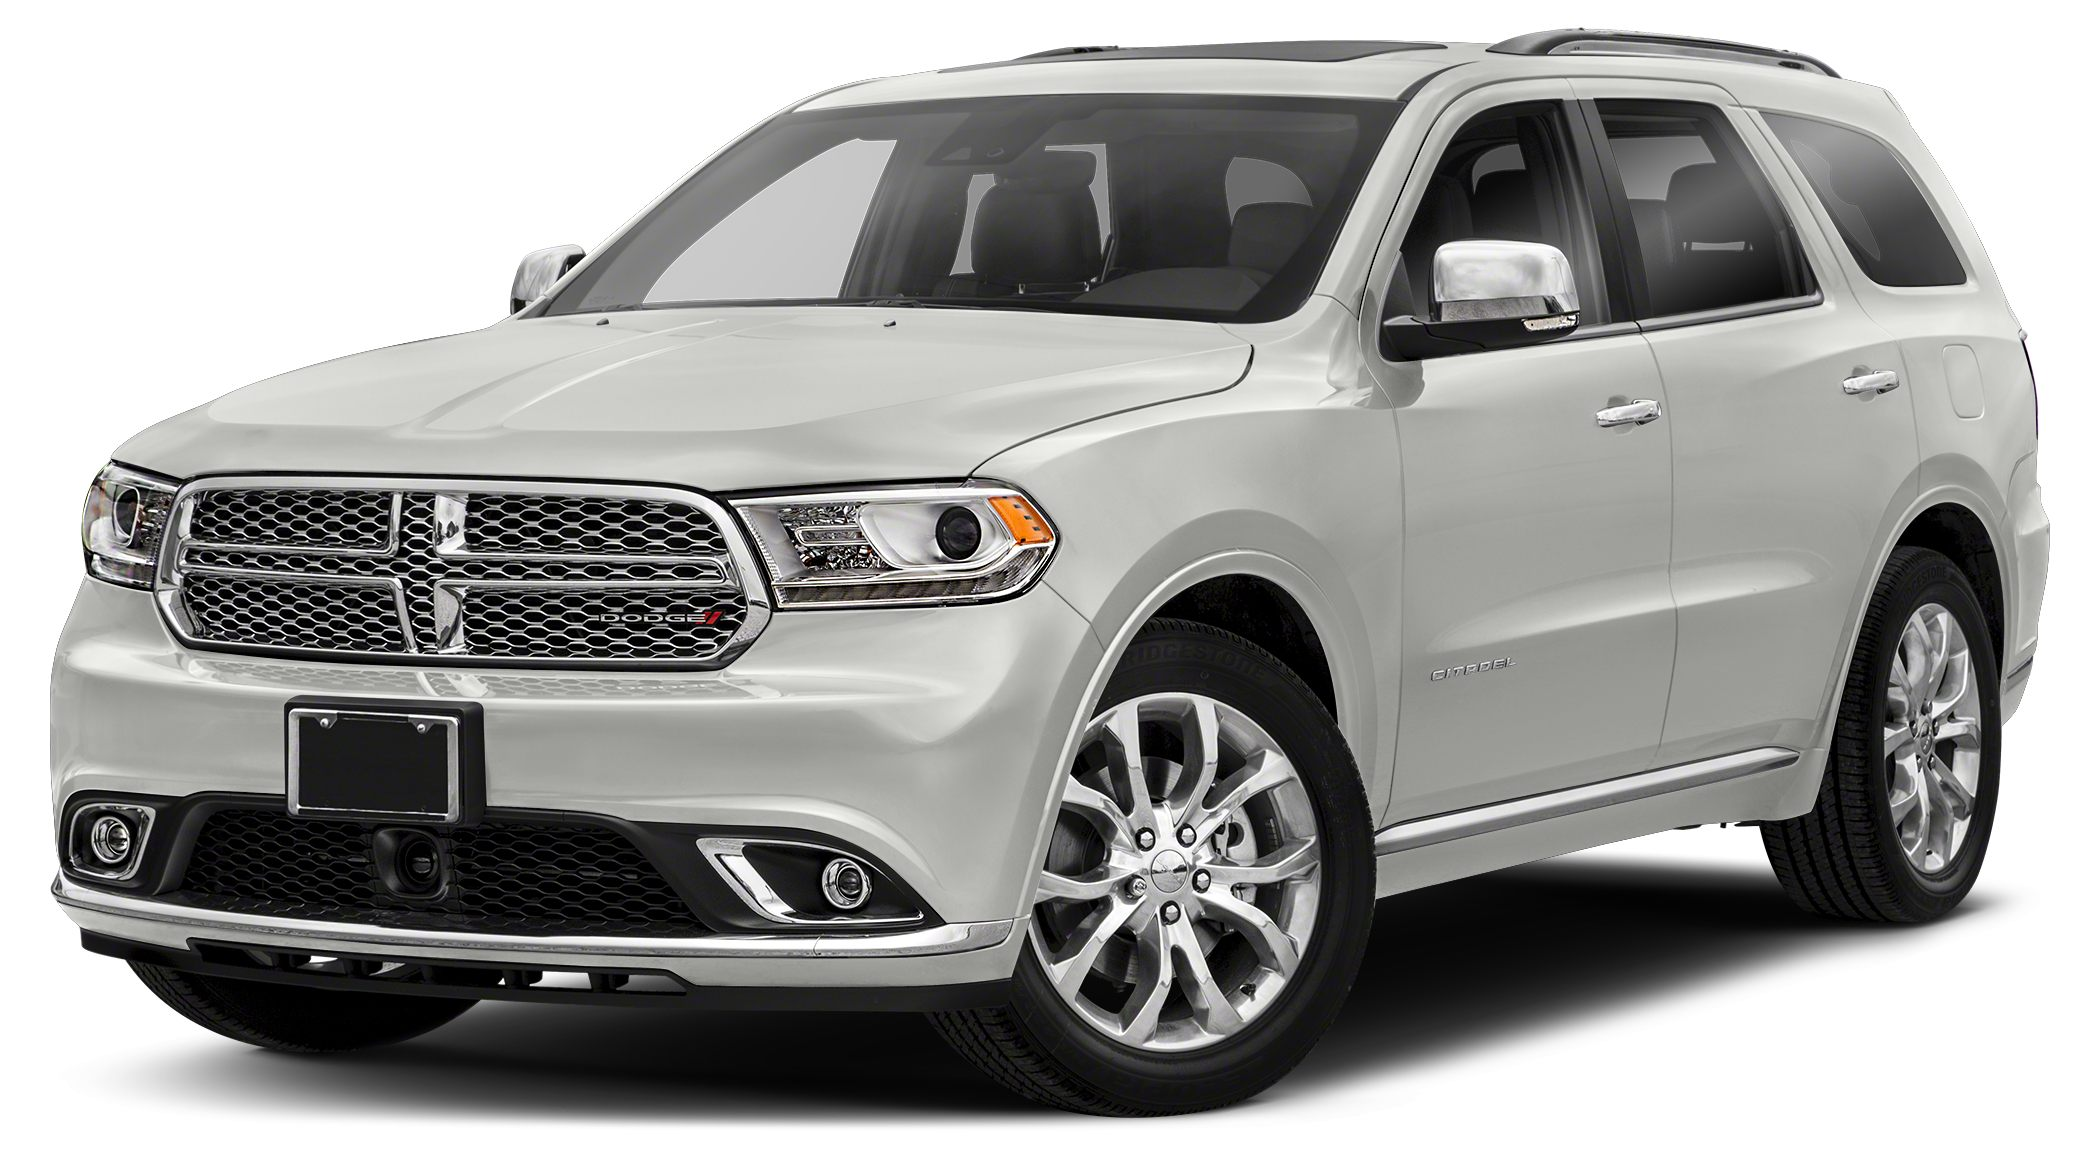 2017 Dodge Durango Citadel SPECIAL ONLINE PRICE INCLUDES 2750 IN REBATES THAT ALL CUSTOMERS QUAL